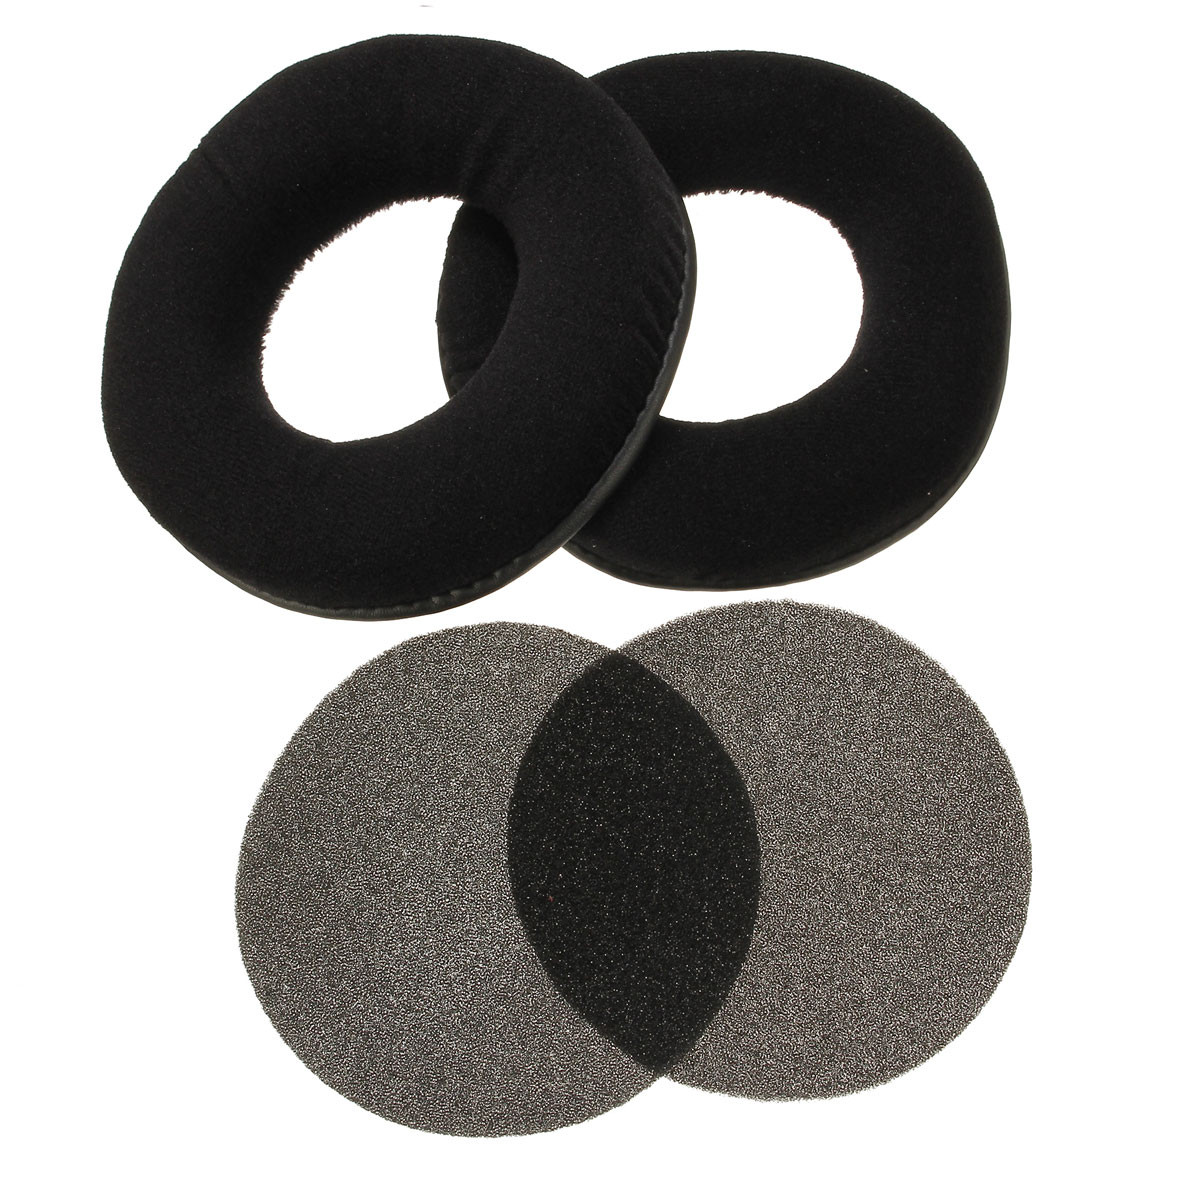 Velour Velvet Replacement Ear Pads Cushion For AKG K240 Studio K240MKII K270 K271 K271S K272